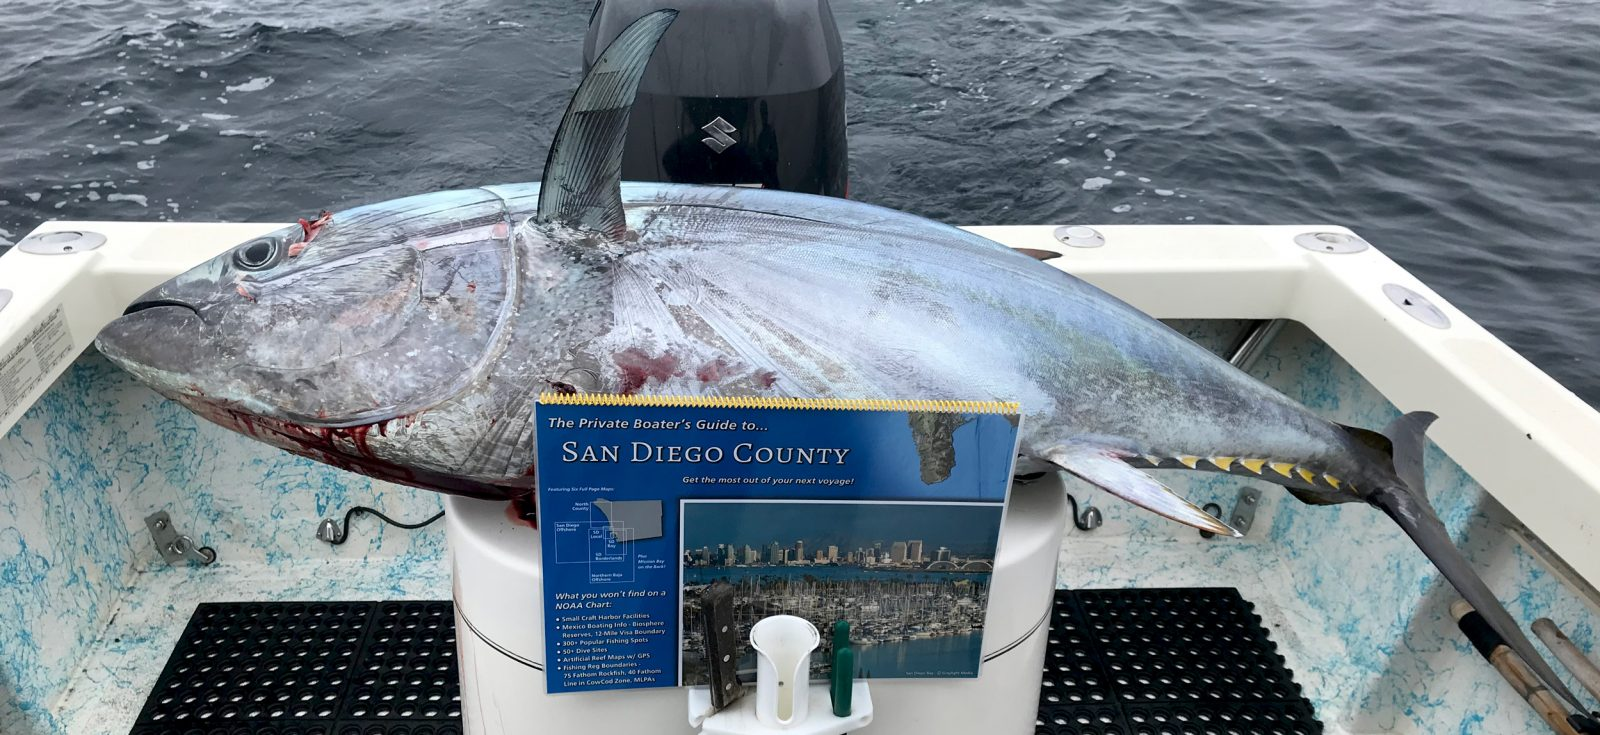 Bluefin tuna and boater's guide